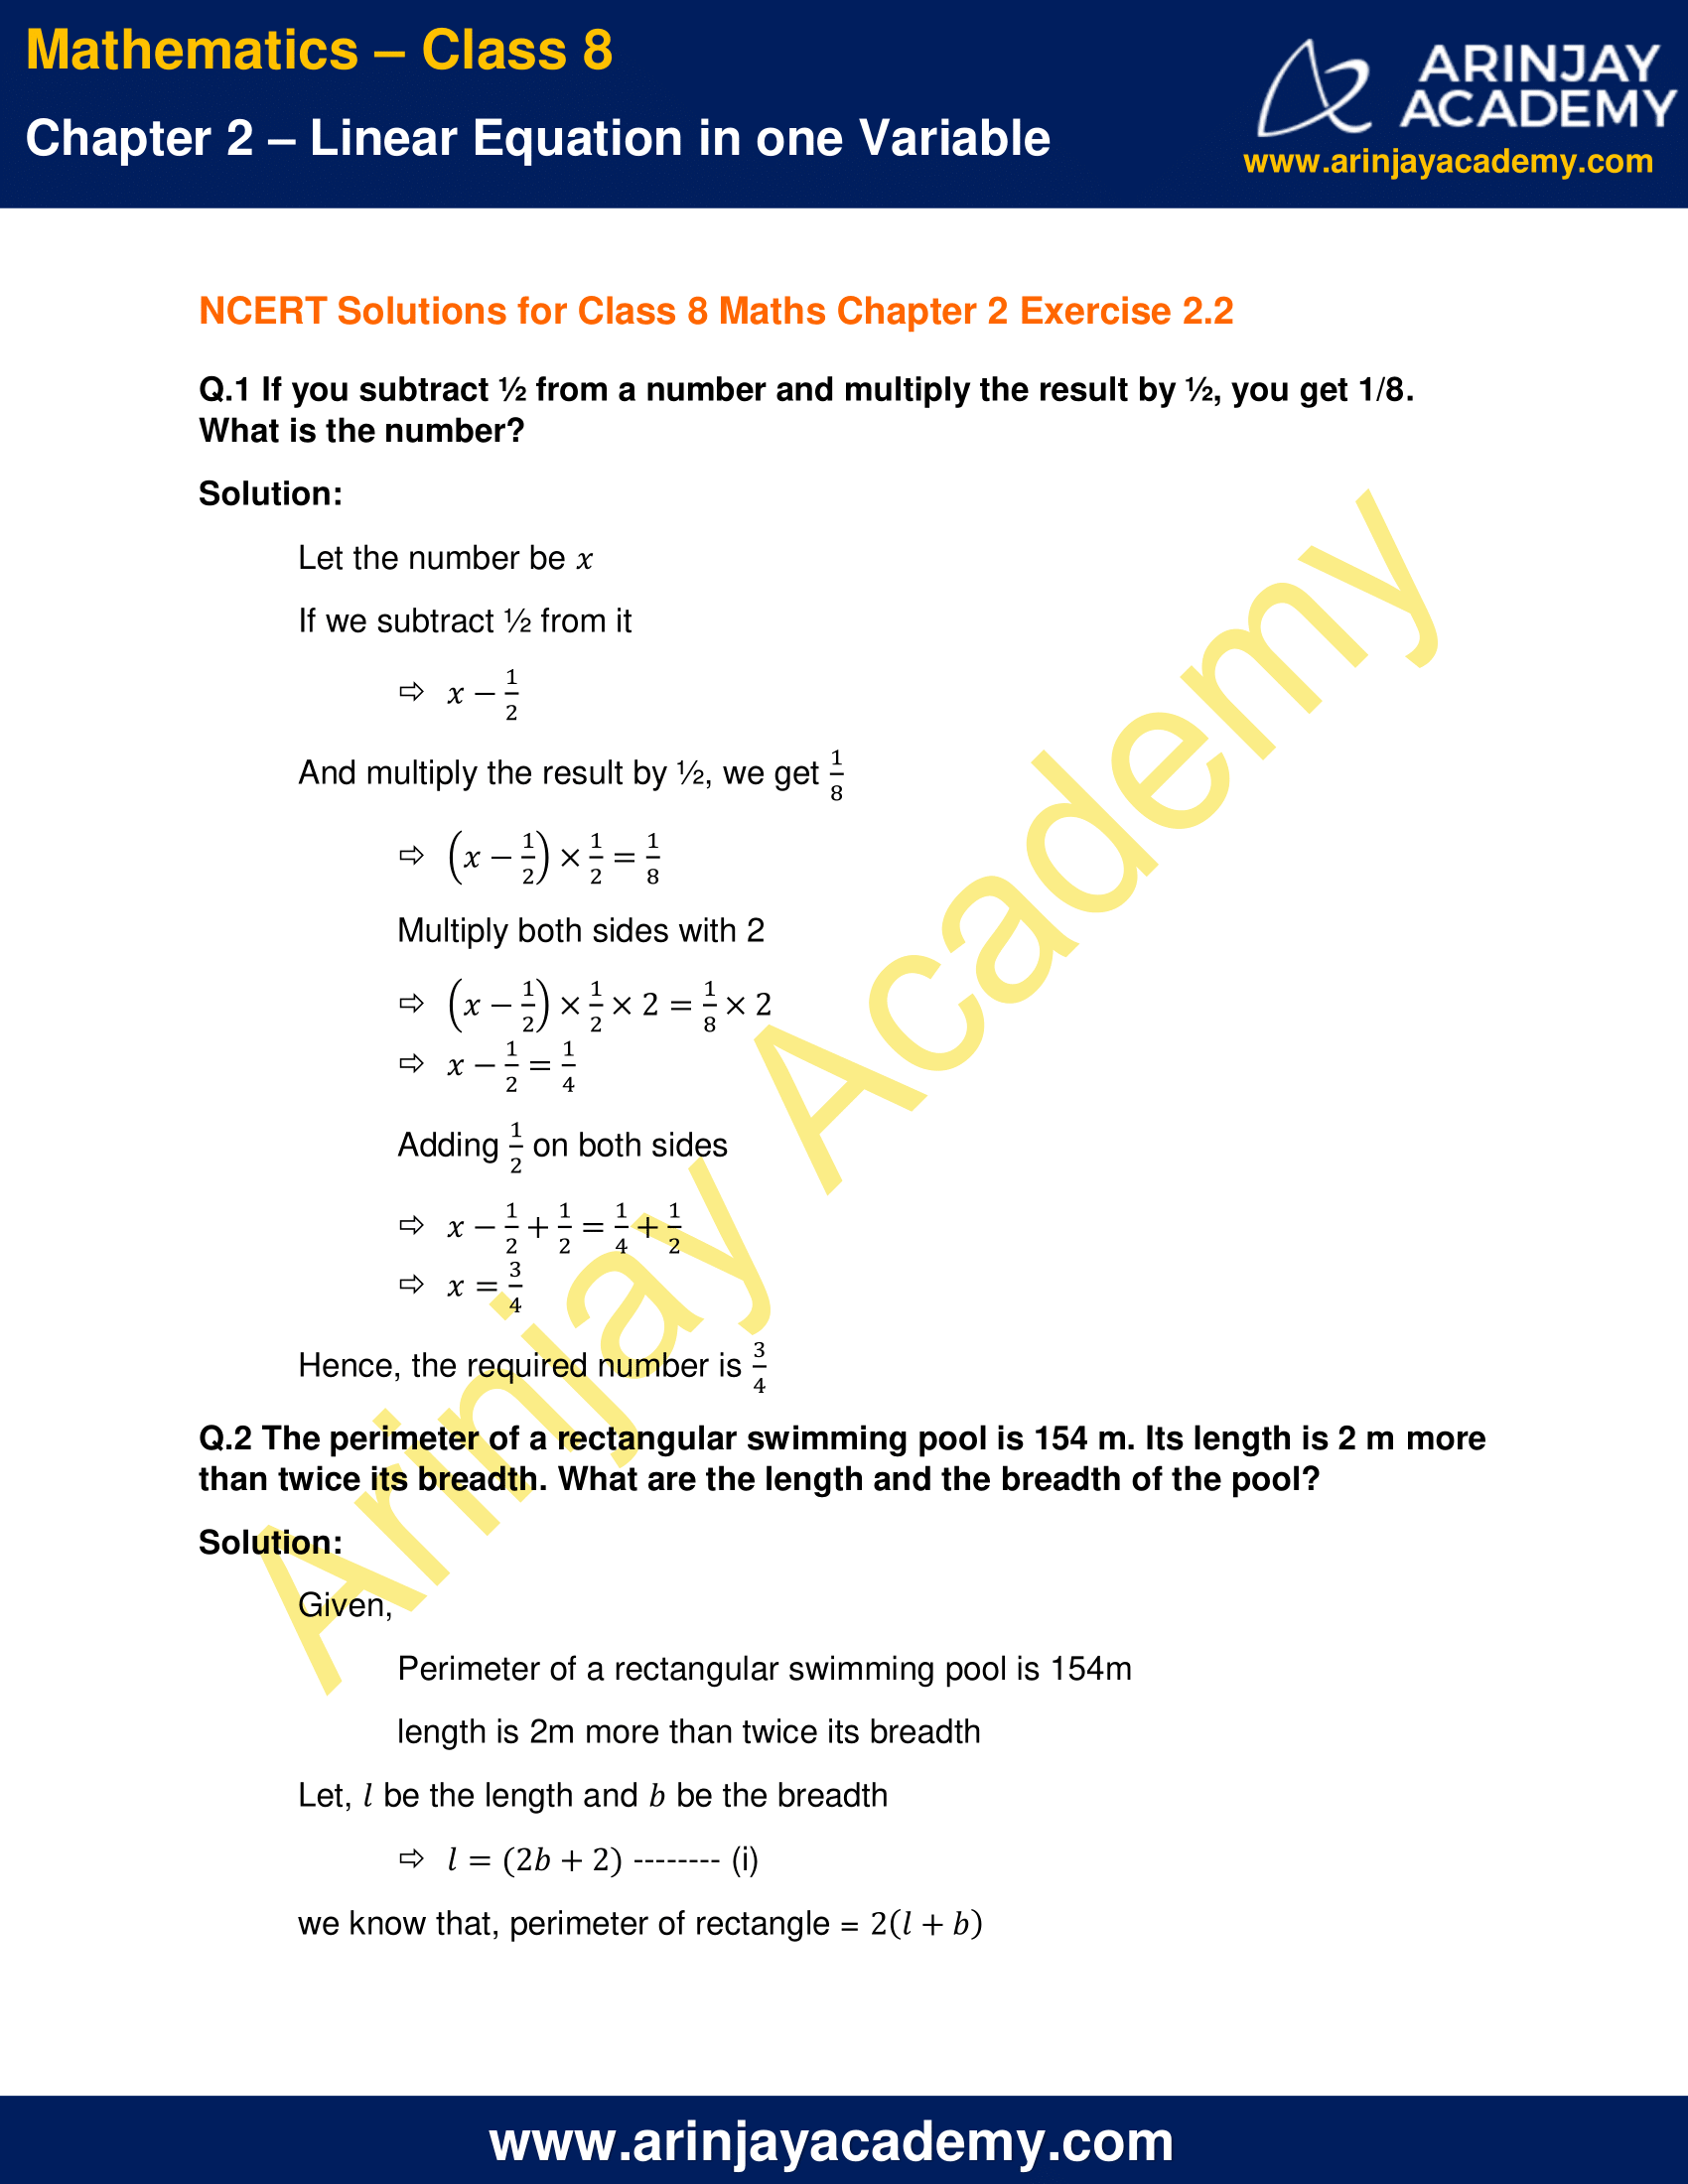 NCERT Solutions for Class 8 Maths Chapter 2 Exercise 2.2 image 1